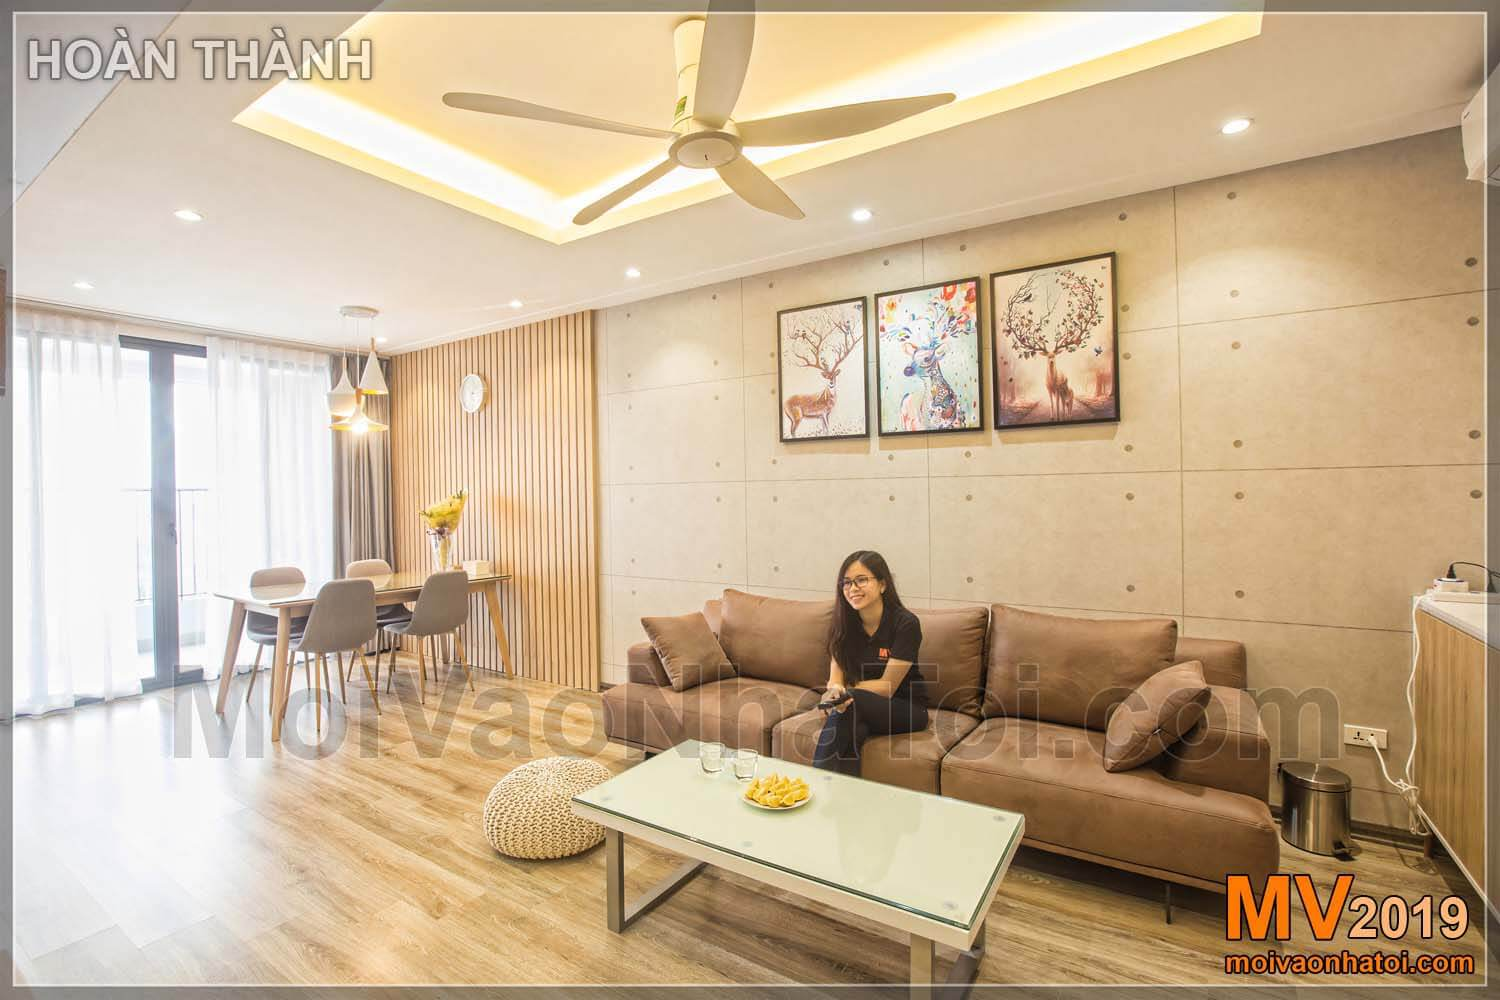 Interior design and construction of Northern Diamond Long Bien apartment building